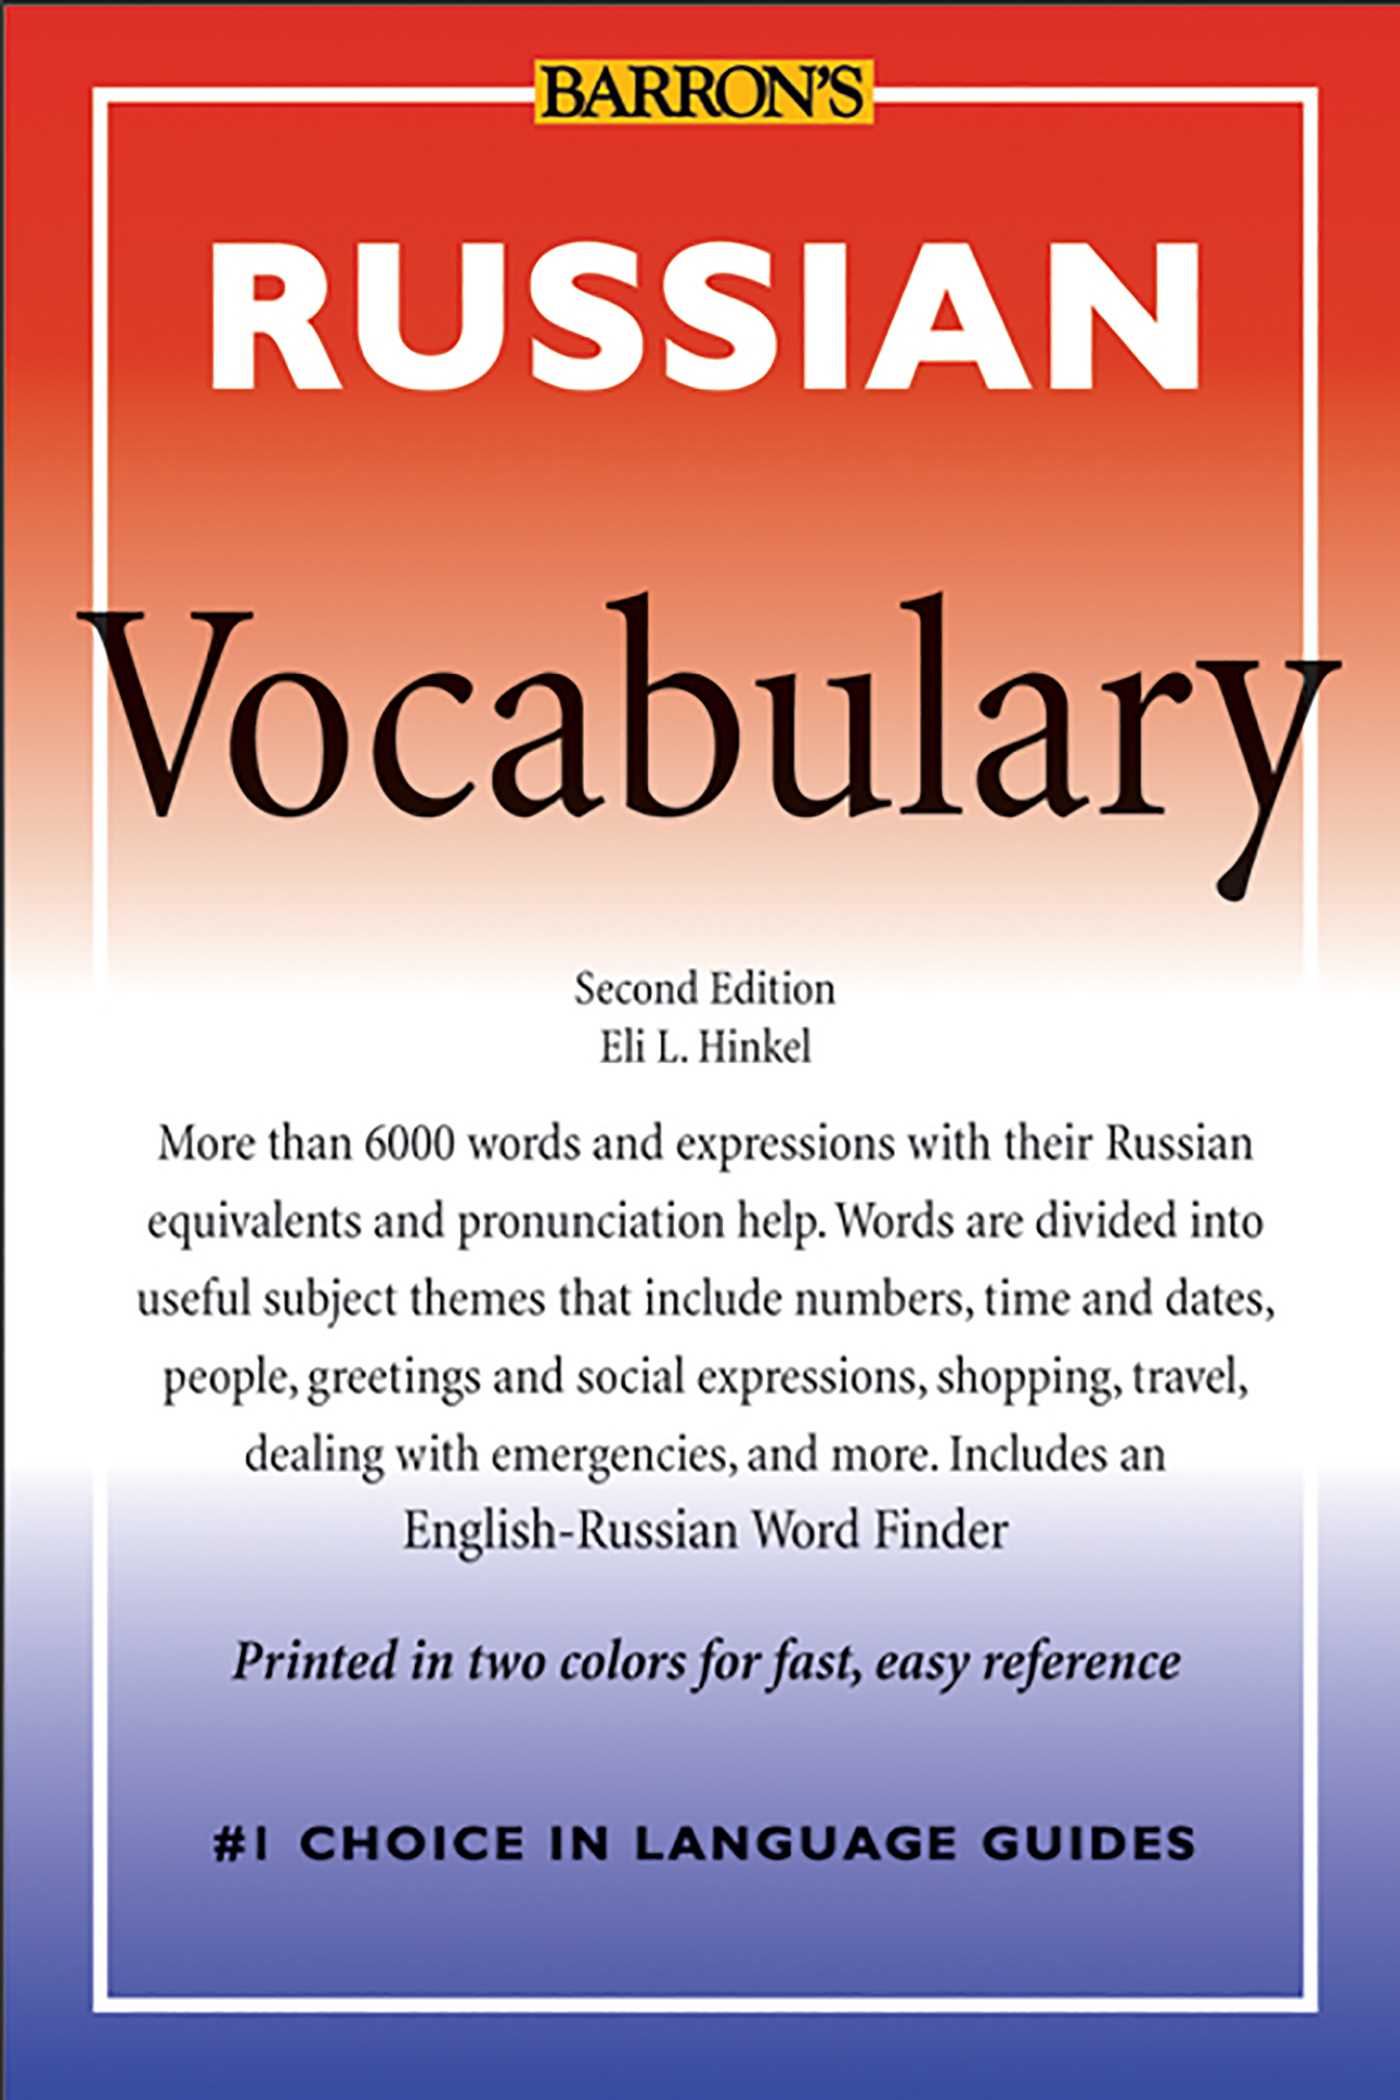 Russian Vocabulary Book By Eli L Hinkel Official Publisher Page